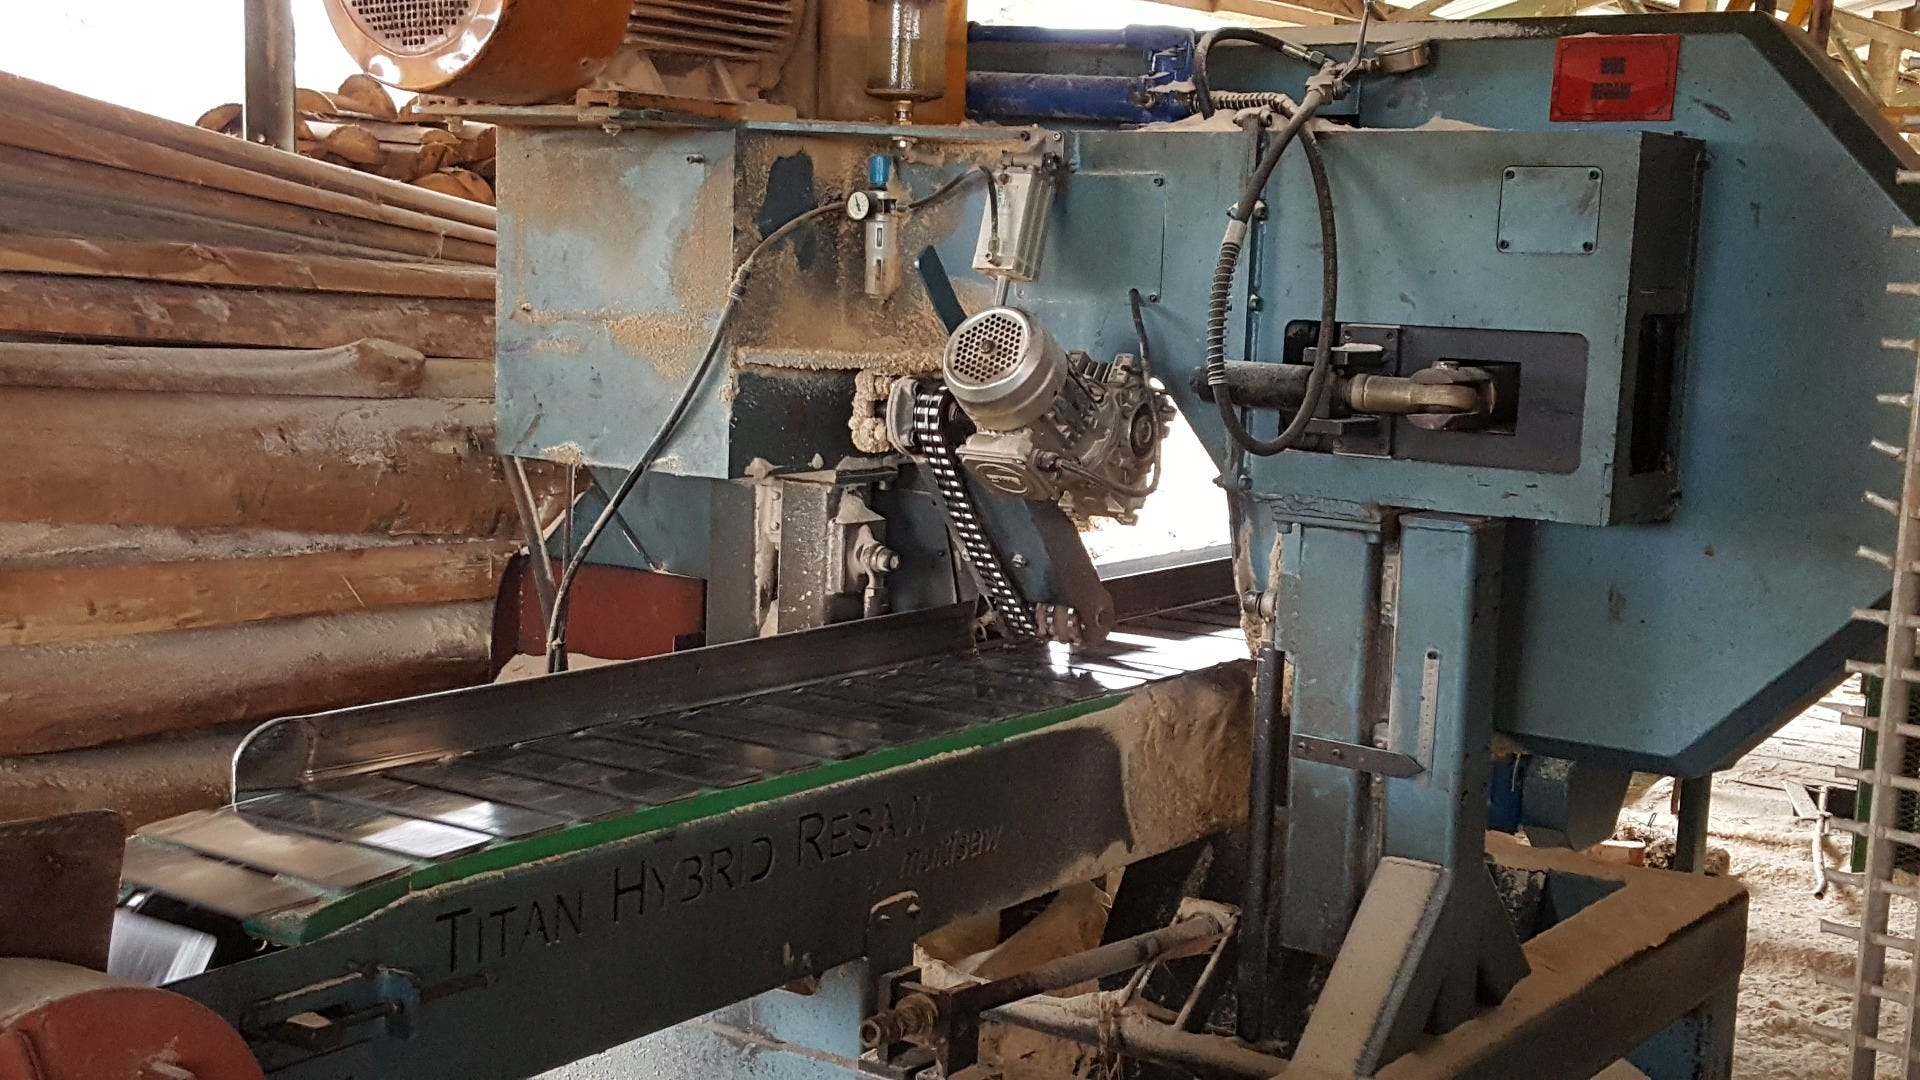 Wood-Mizer's TITAN Hybrid TH-R Resaw is a high-performance, industrial capacity resaw that is available in a single or back-to-back twin-head configuration.